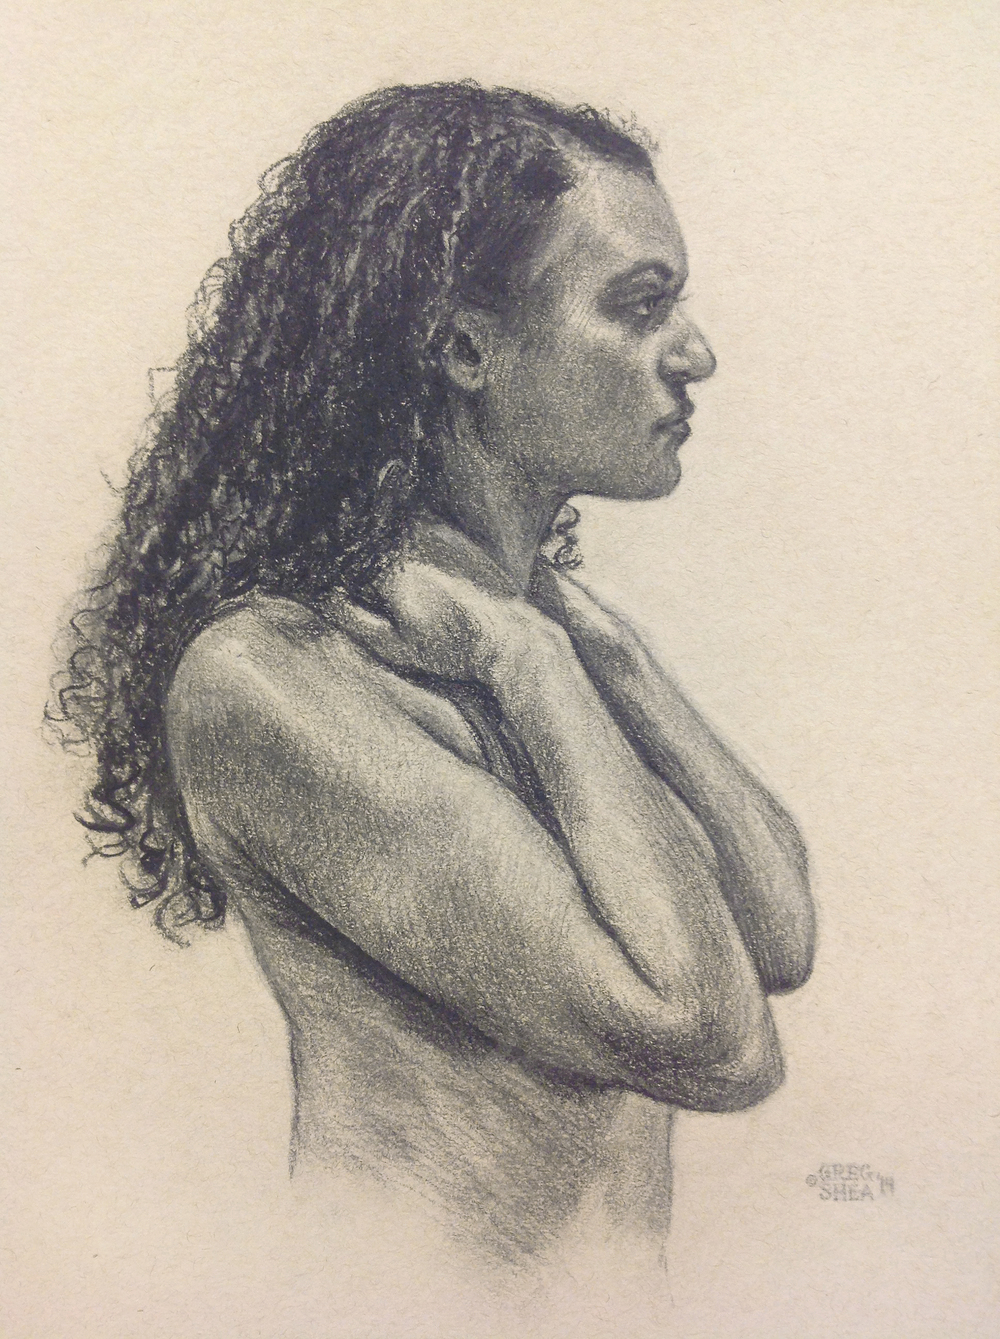 "Angelica  , figure study. 2014. Pastel pencil on toned paper. Image size 8.5"" x 12"". Private collection."